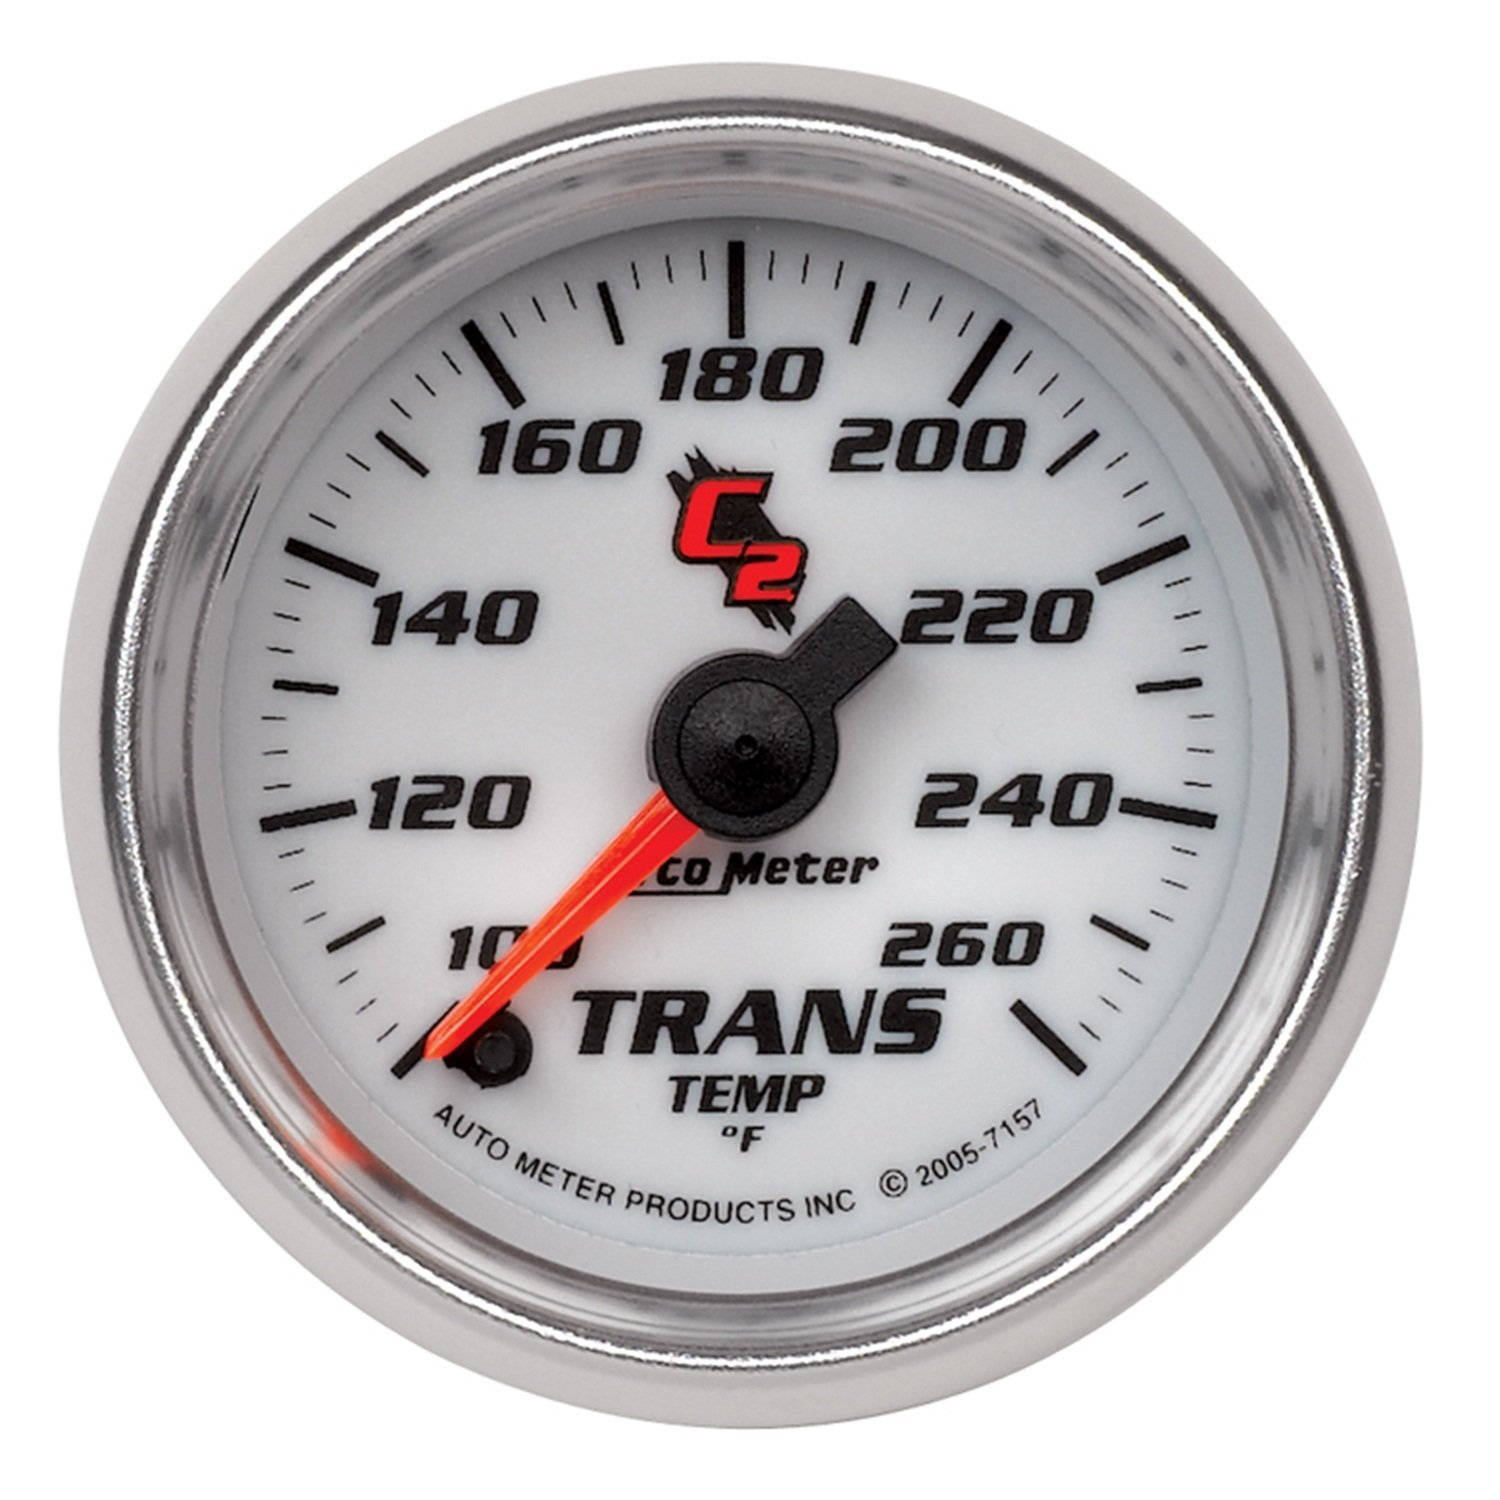 Auto Meter 7157 C2 Full Sweep Electric Transmission Temperature Gauge by Auto Meter